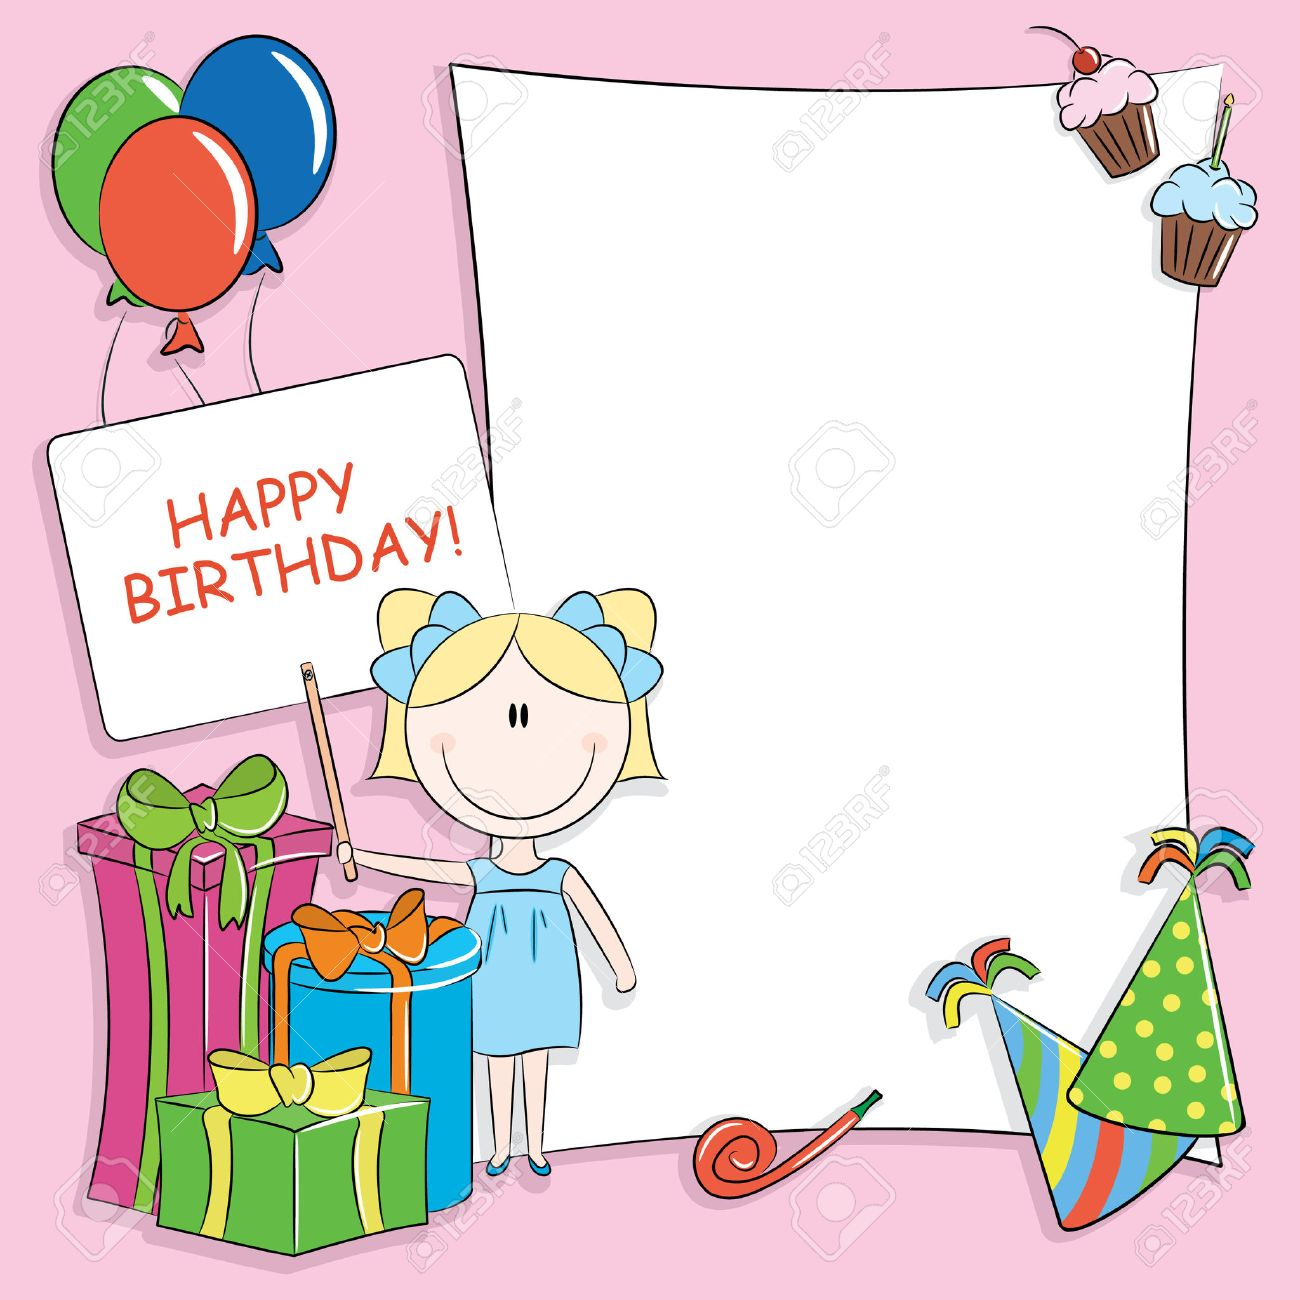 Happy birthday greeting card with blank place for your wishes happy birthday greeting card with blank place for your wishes and message stock vector 7548128 m4hsunfo